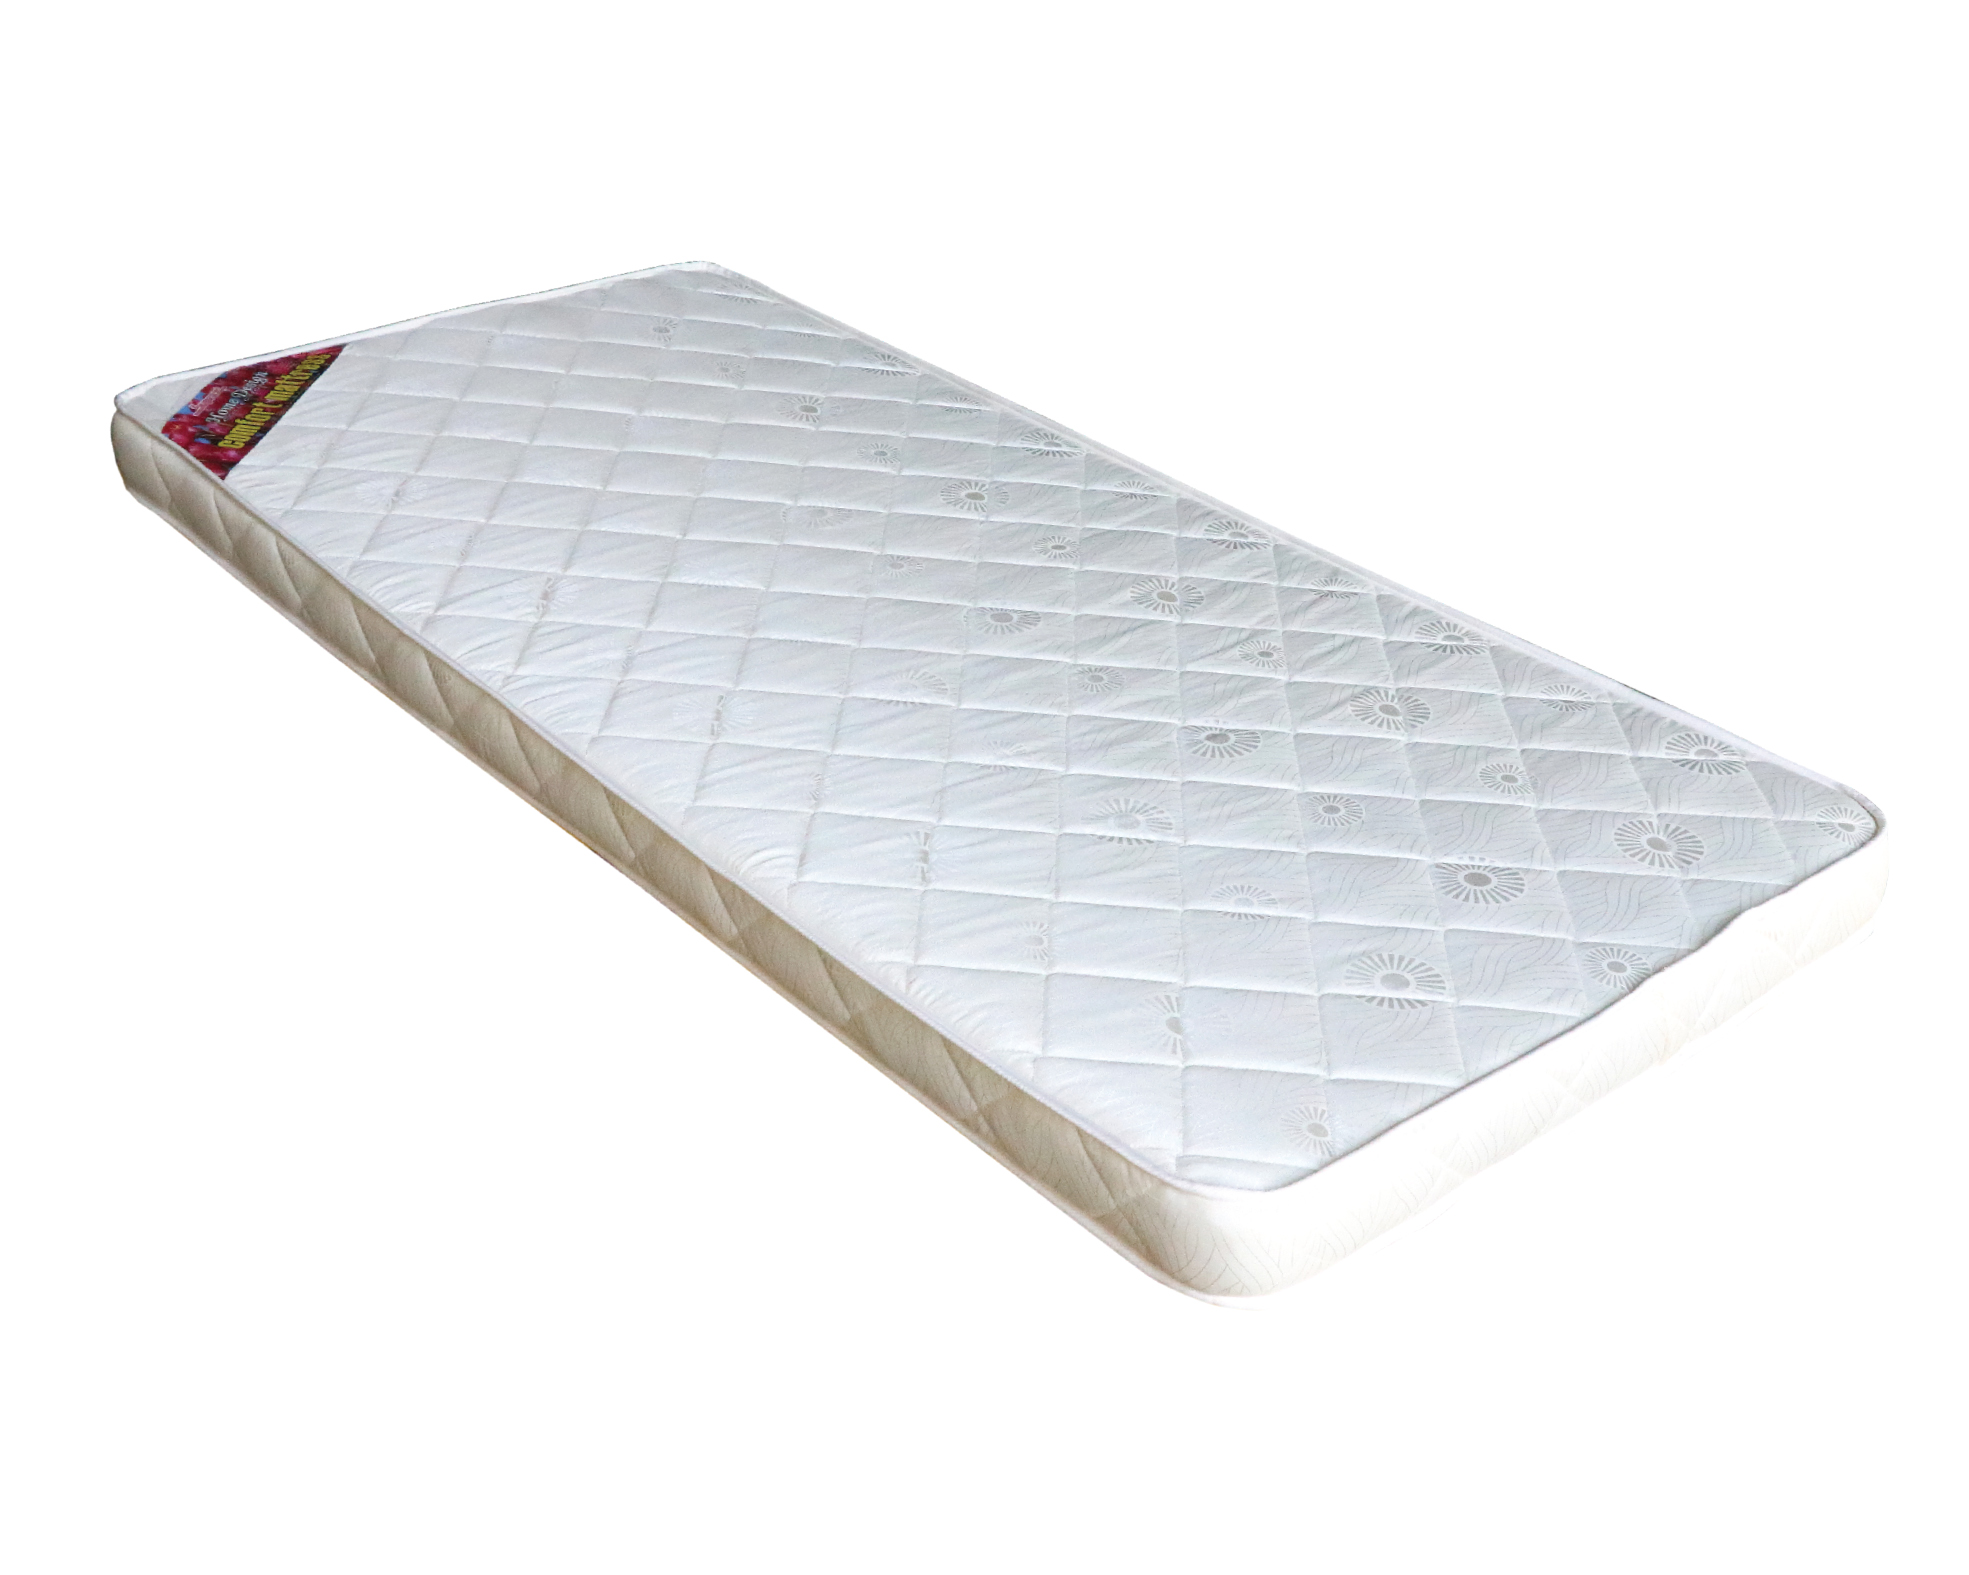 Special Mattress-Specially manufactured mattress as per requirement